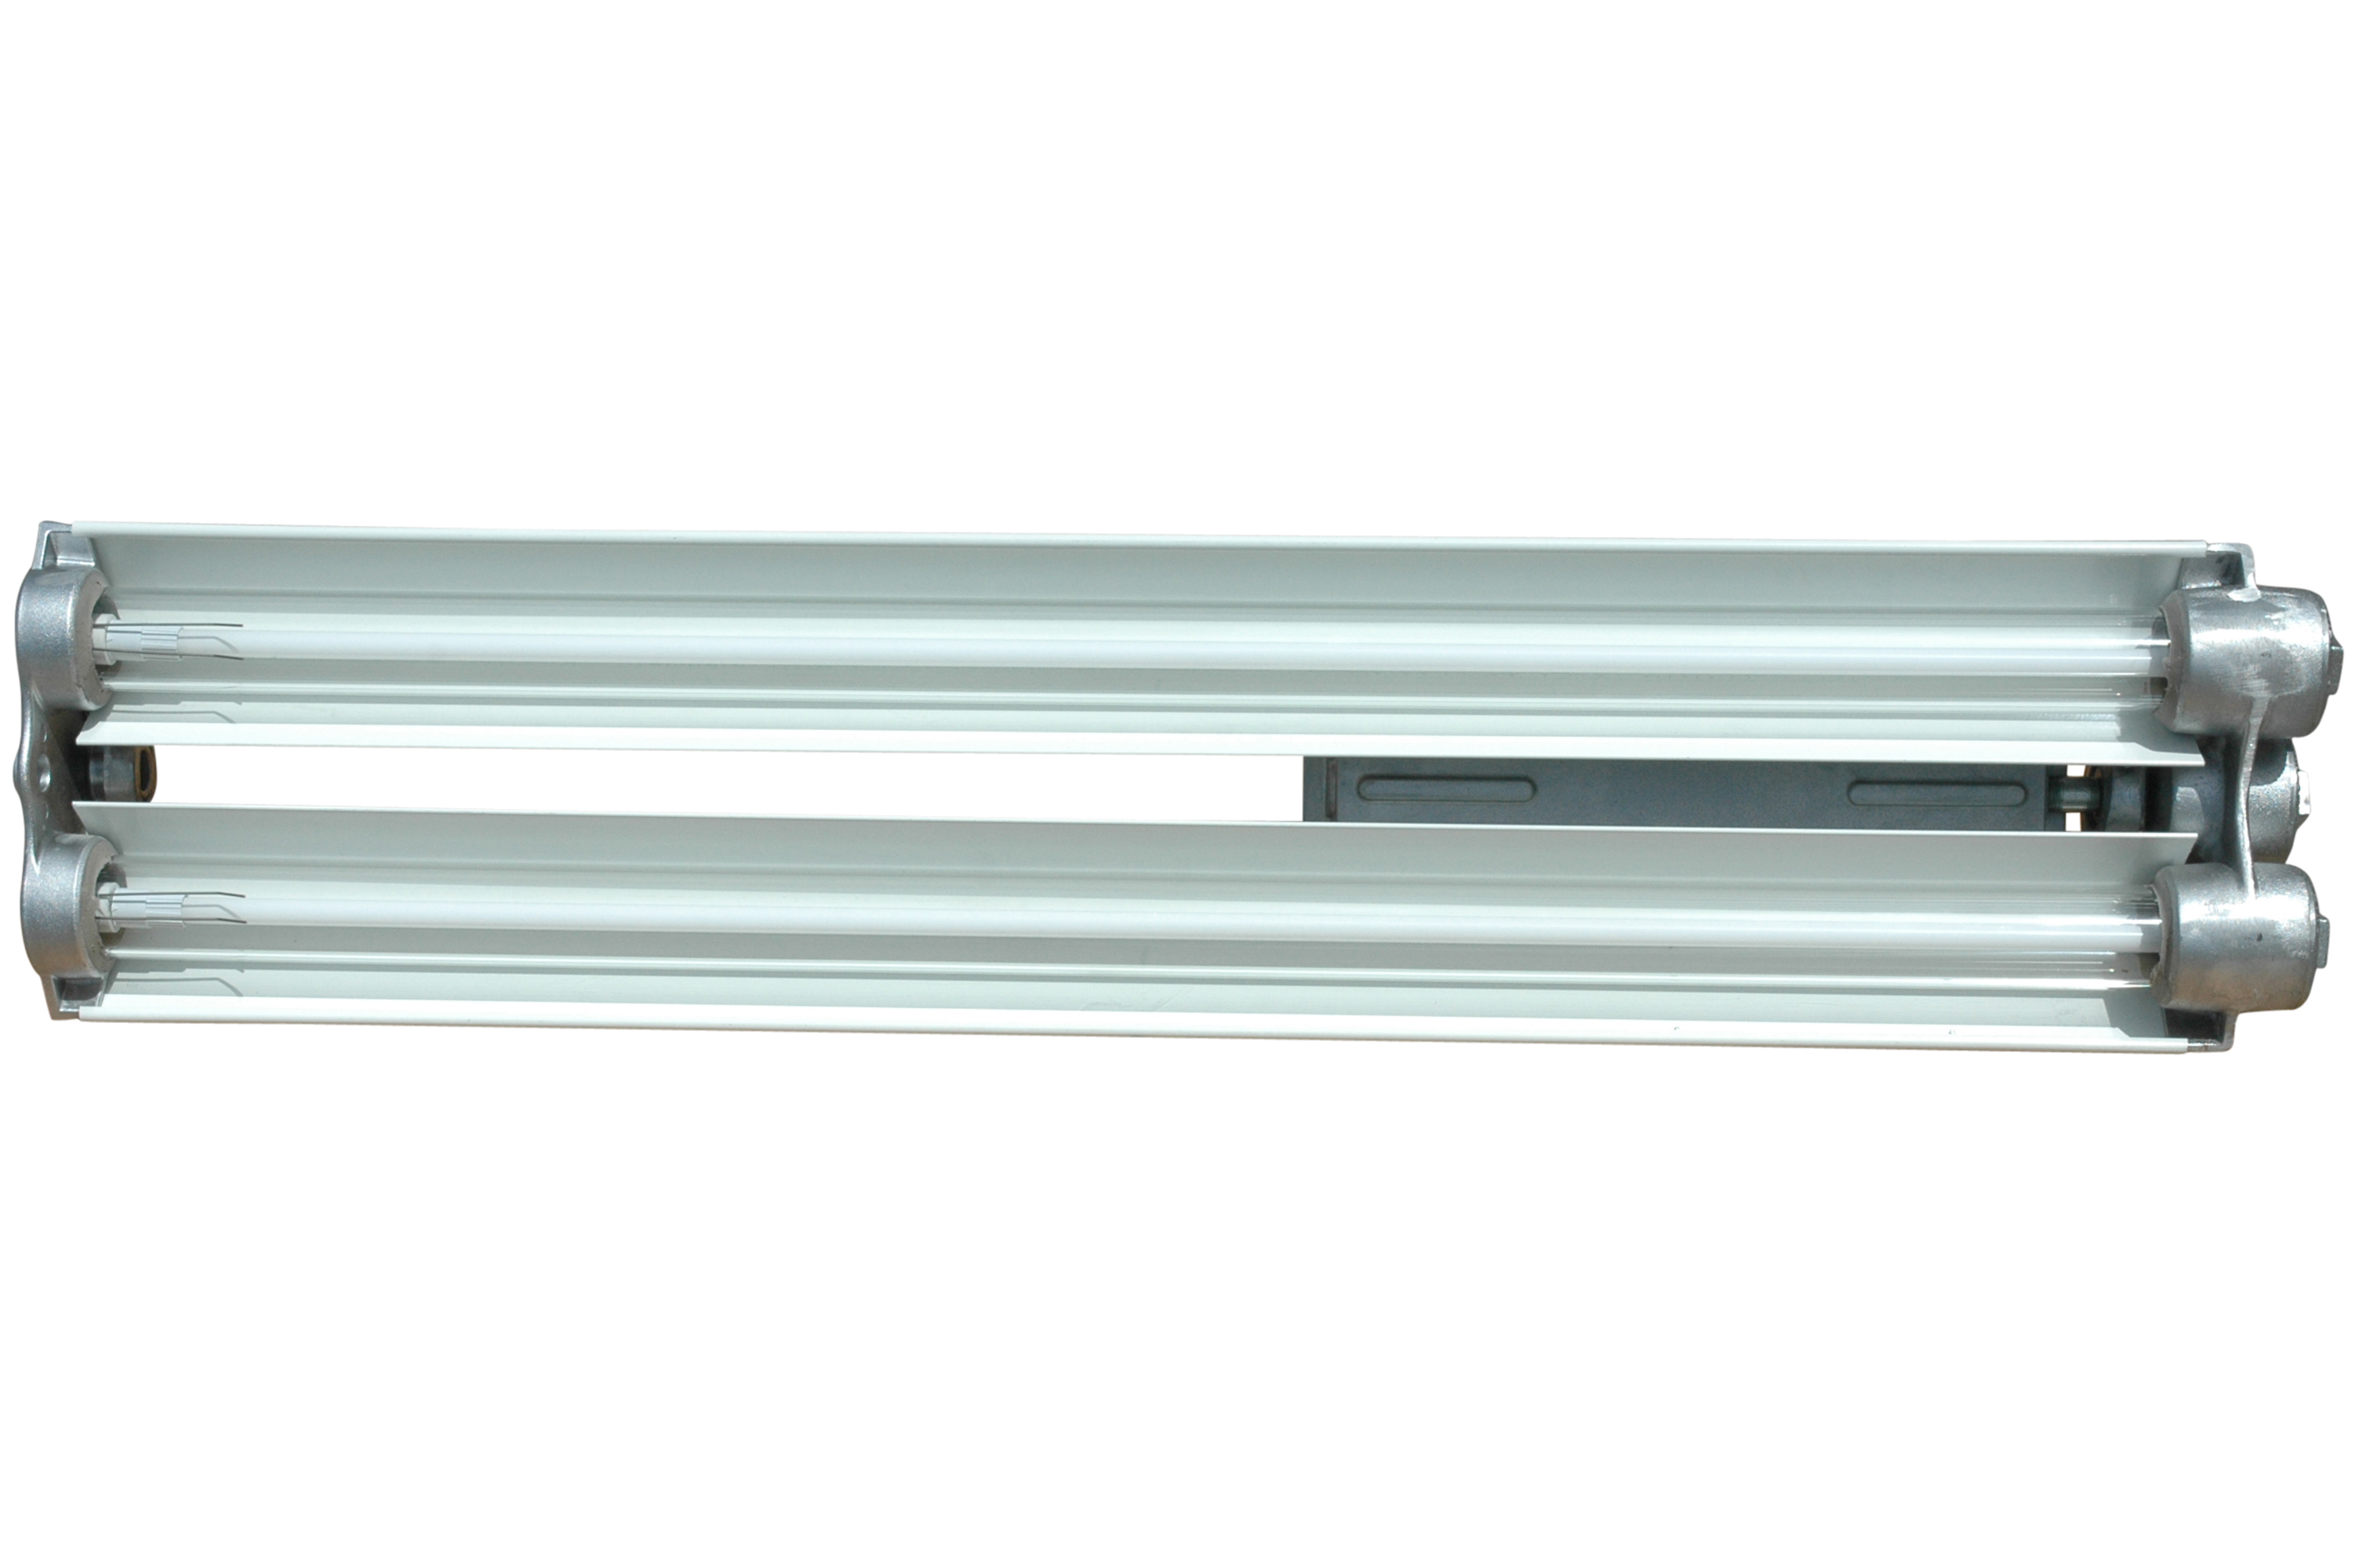 New Explosion Proof Fluorescent Light from Larson Electronics ...